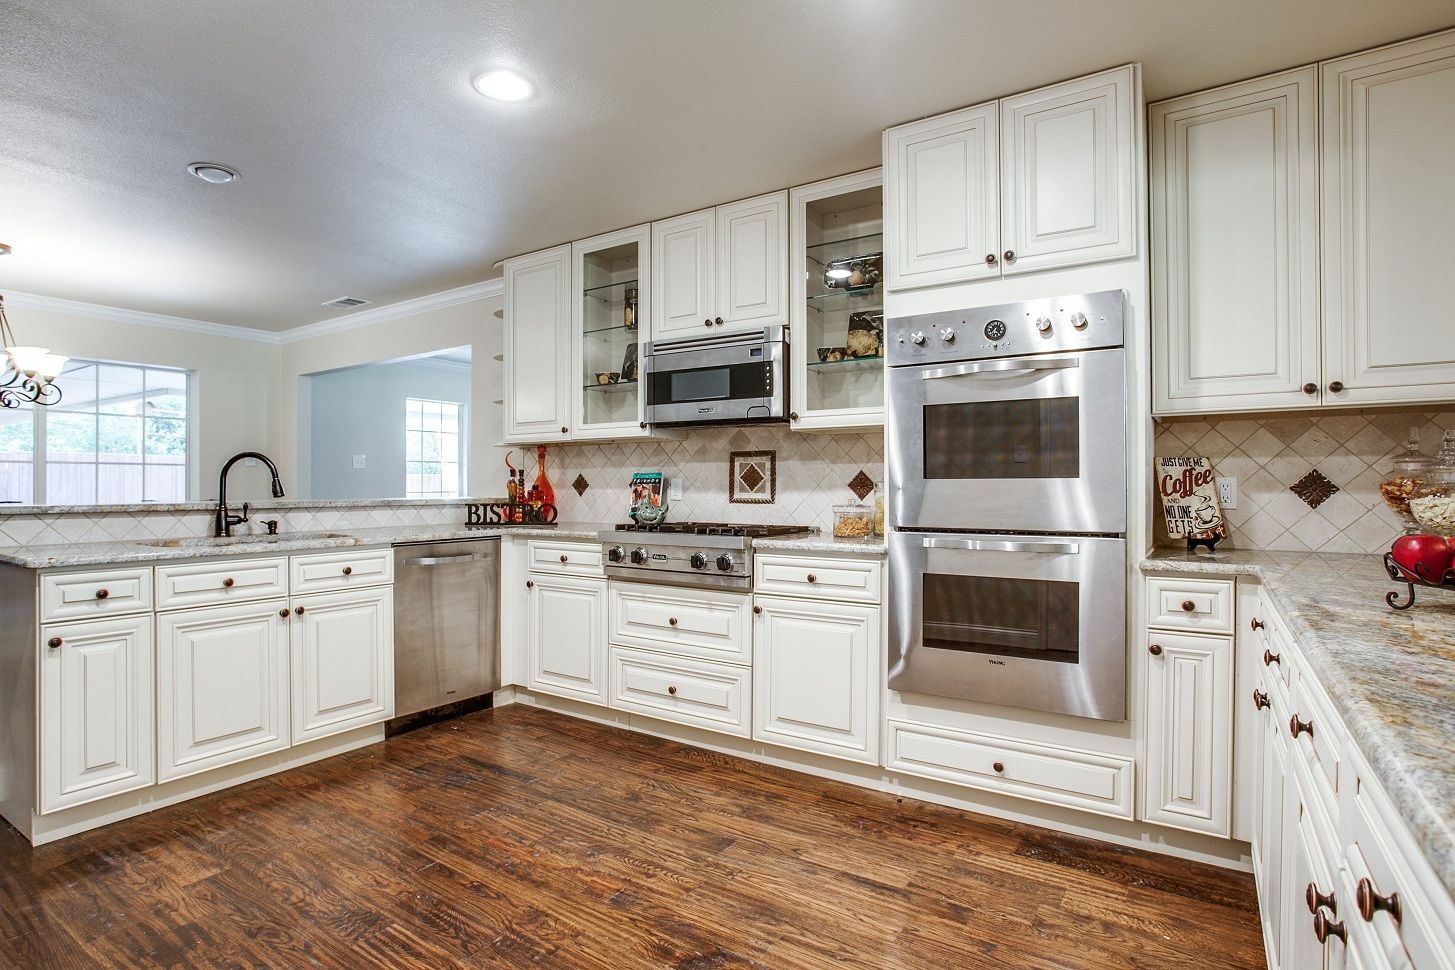 White Kitchen Appliances With Wood Cabinets off white kitchen cabinets with white appliances | basement